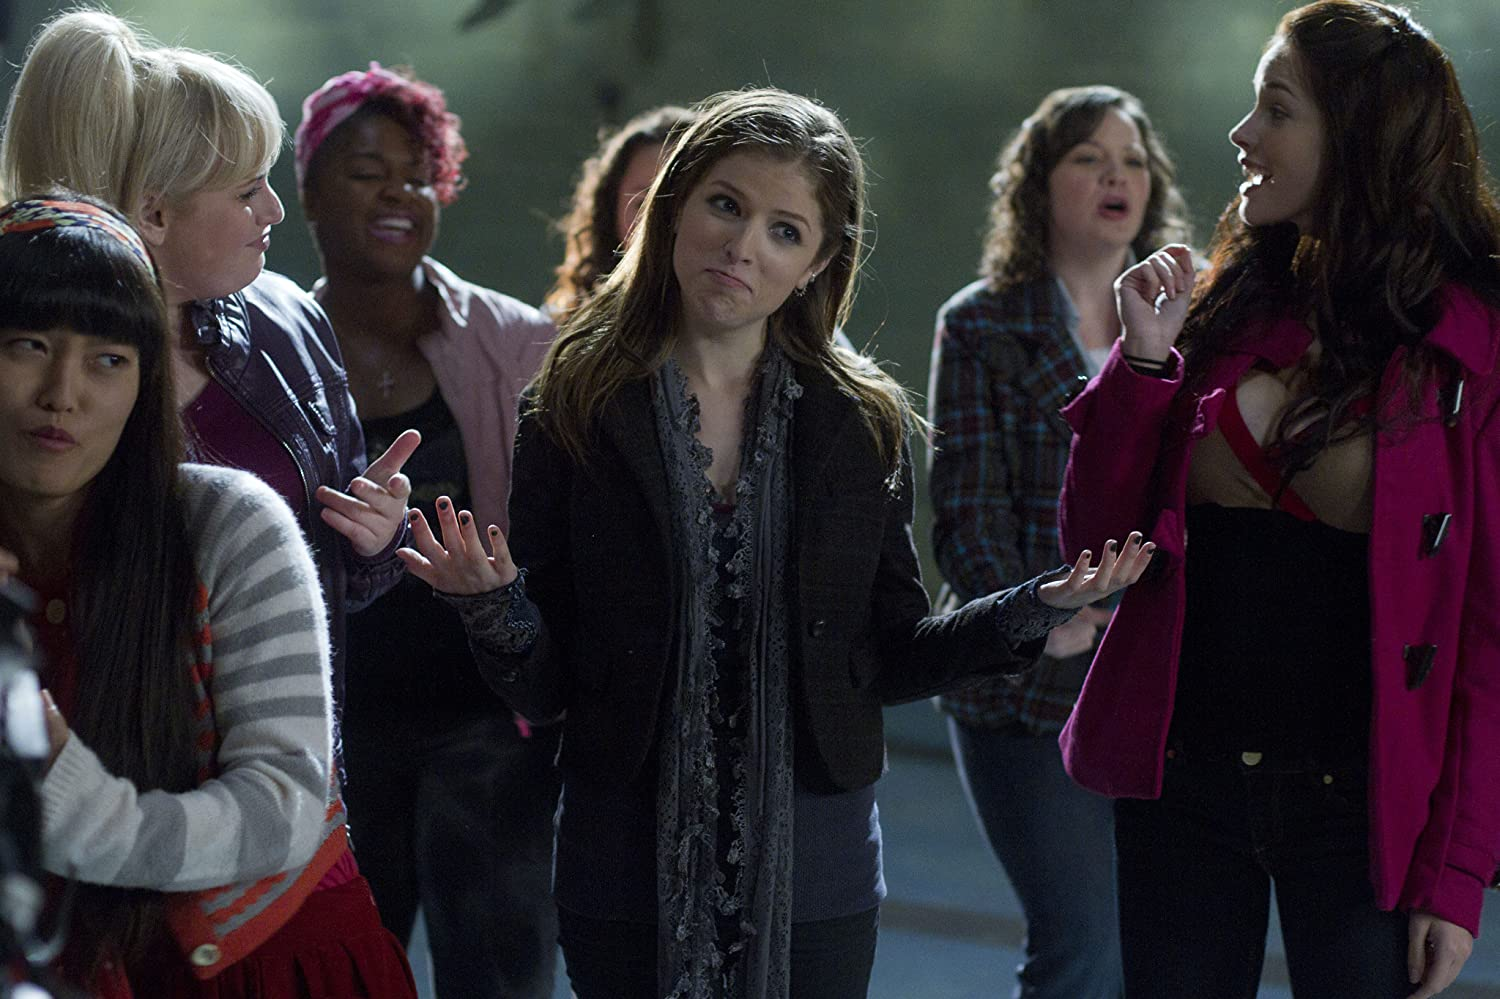 Anna Kendrick, Rebel Wilson, Hana Mae Lee, Alexis Knapp, Ester Dean, and Shelley Regner in Pitch Perfect (2012)